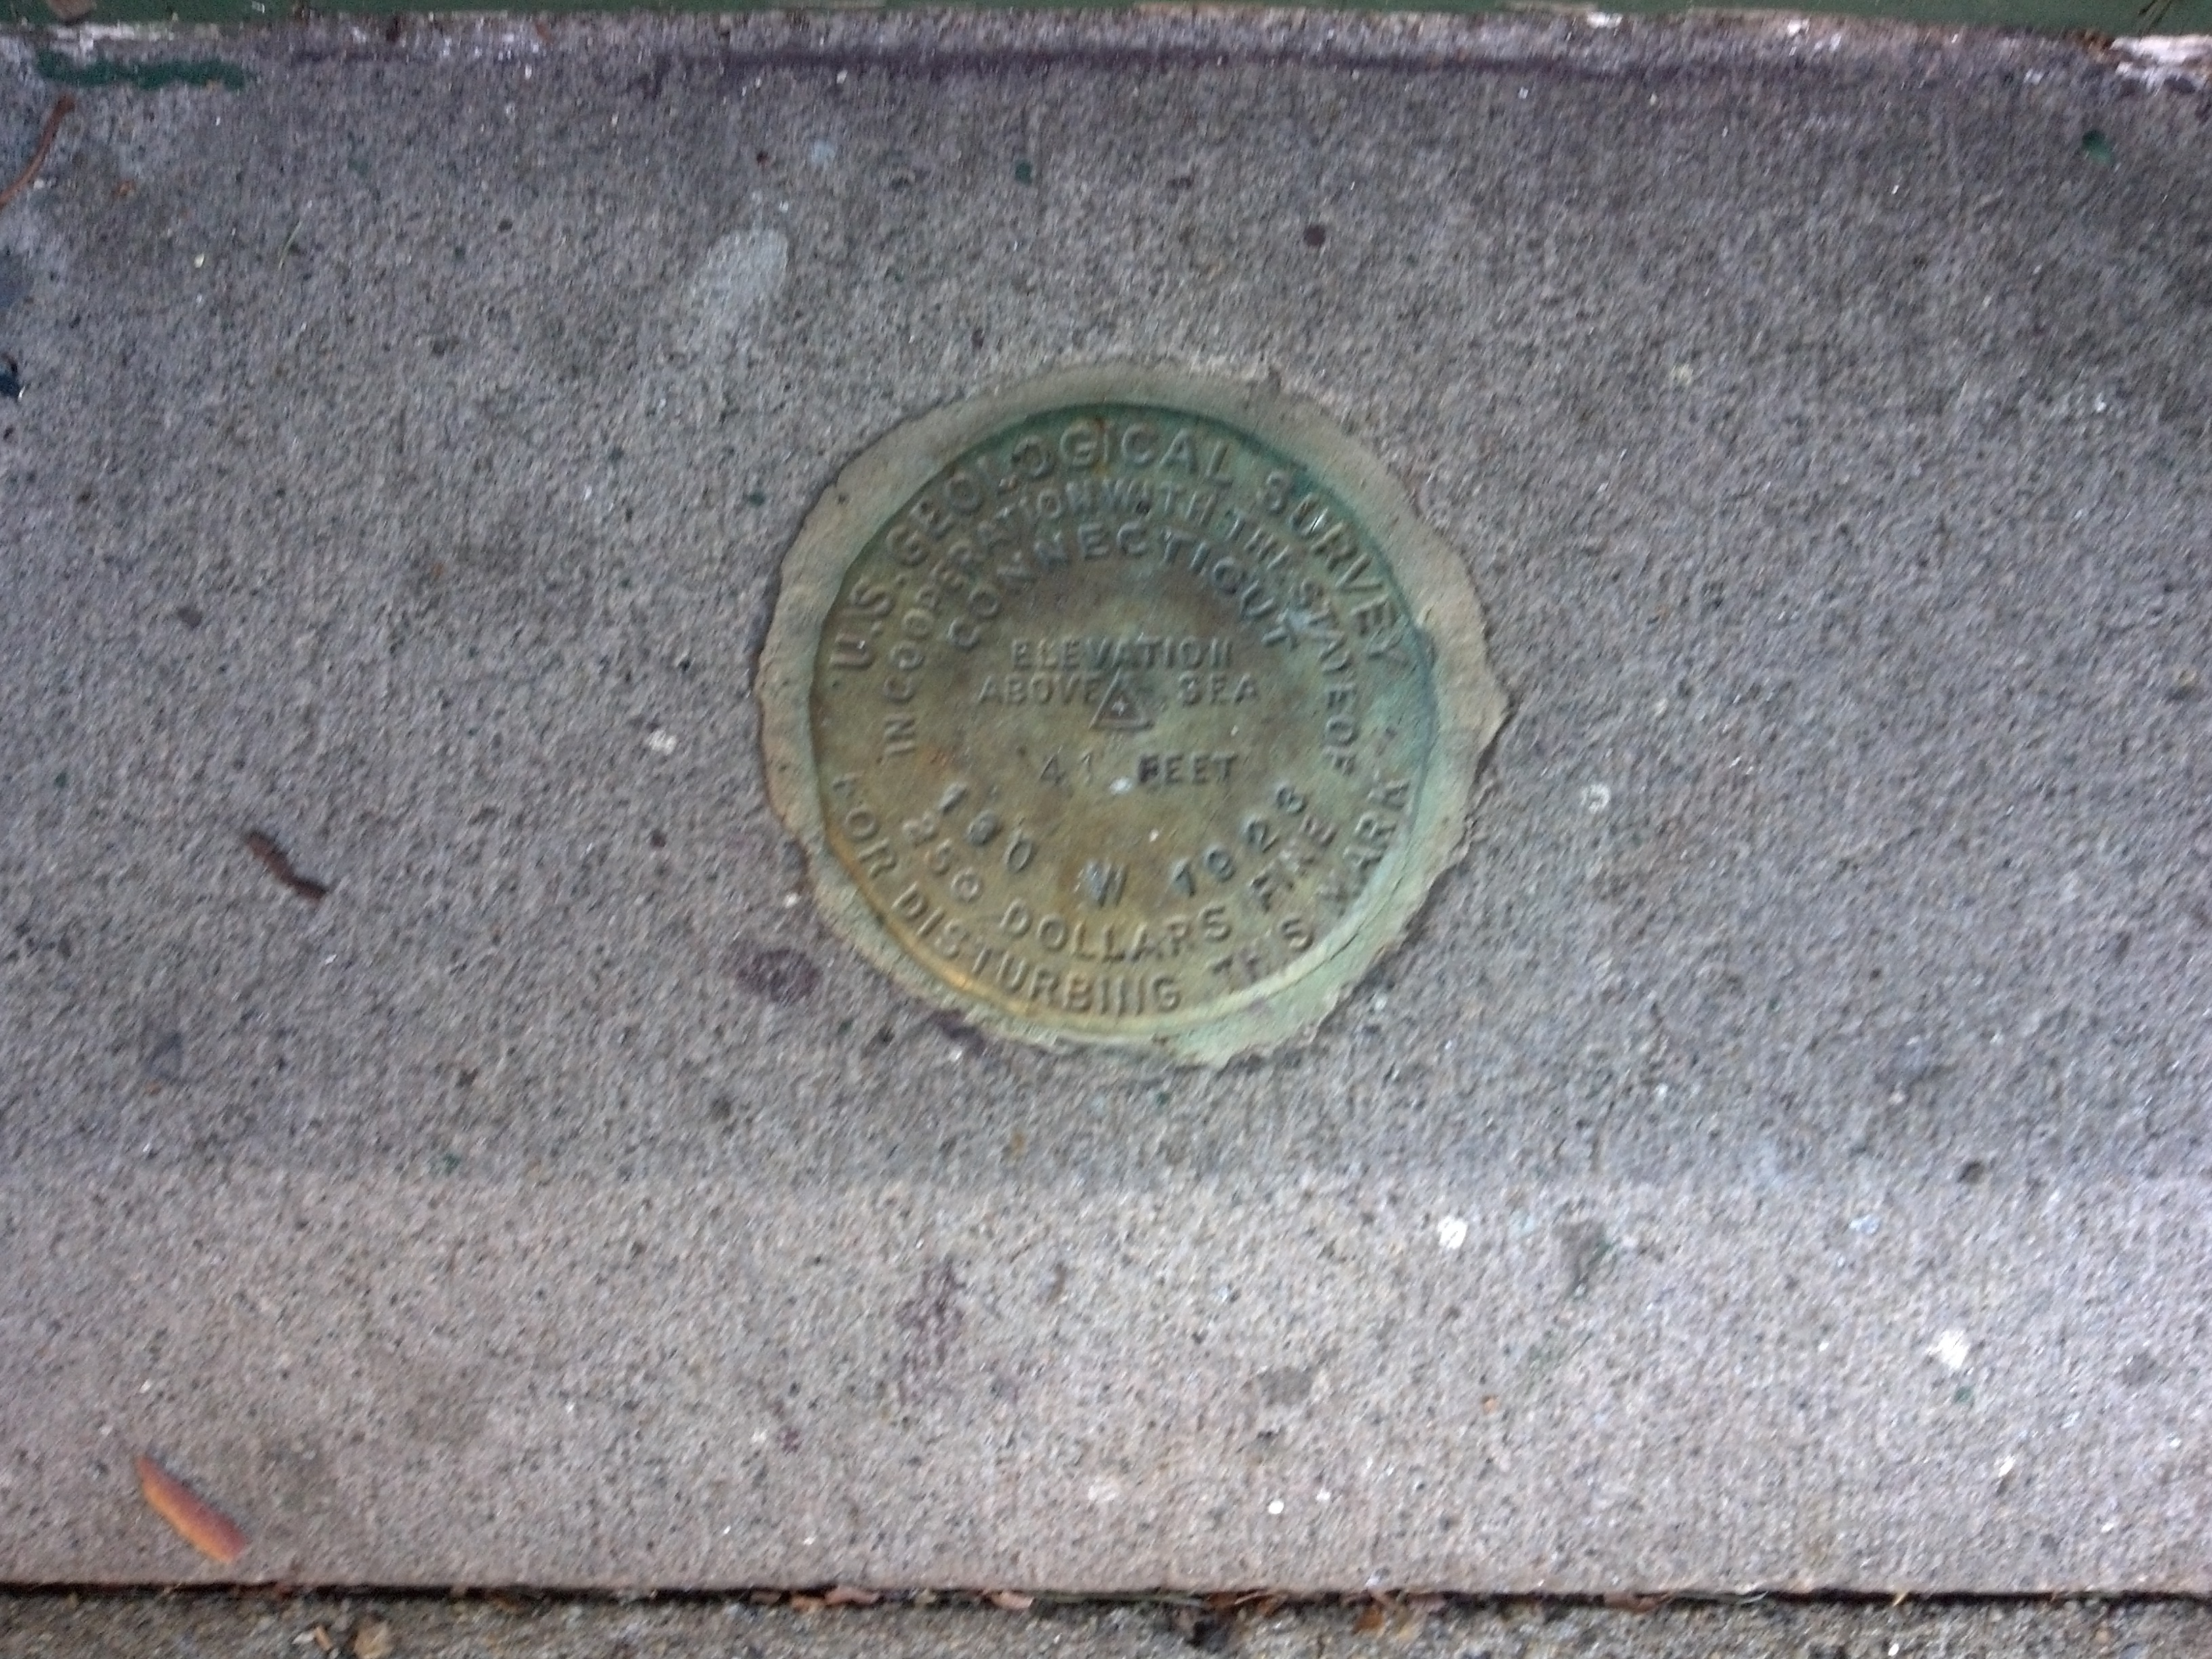 U.S. Geological Survey Marker located next to City Hall Broadway entrance